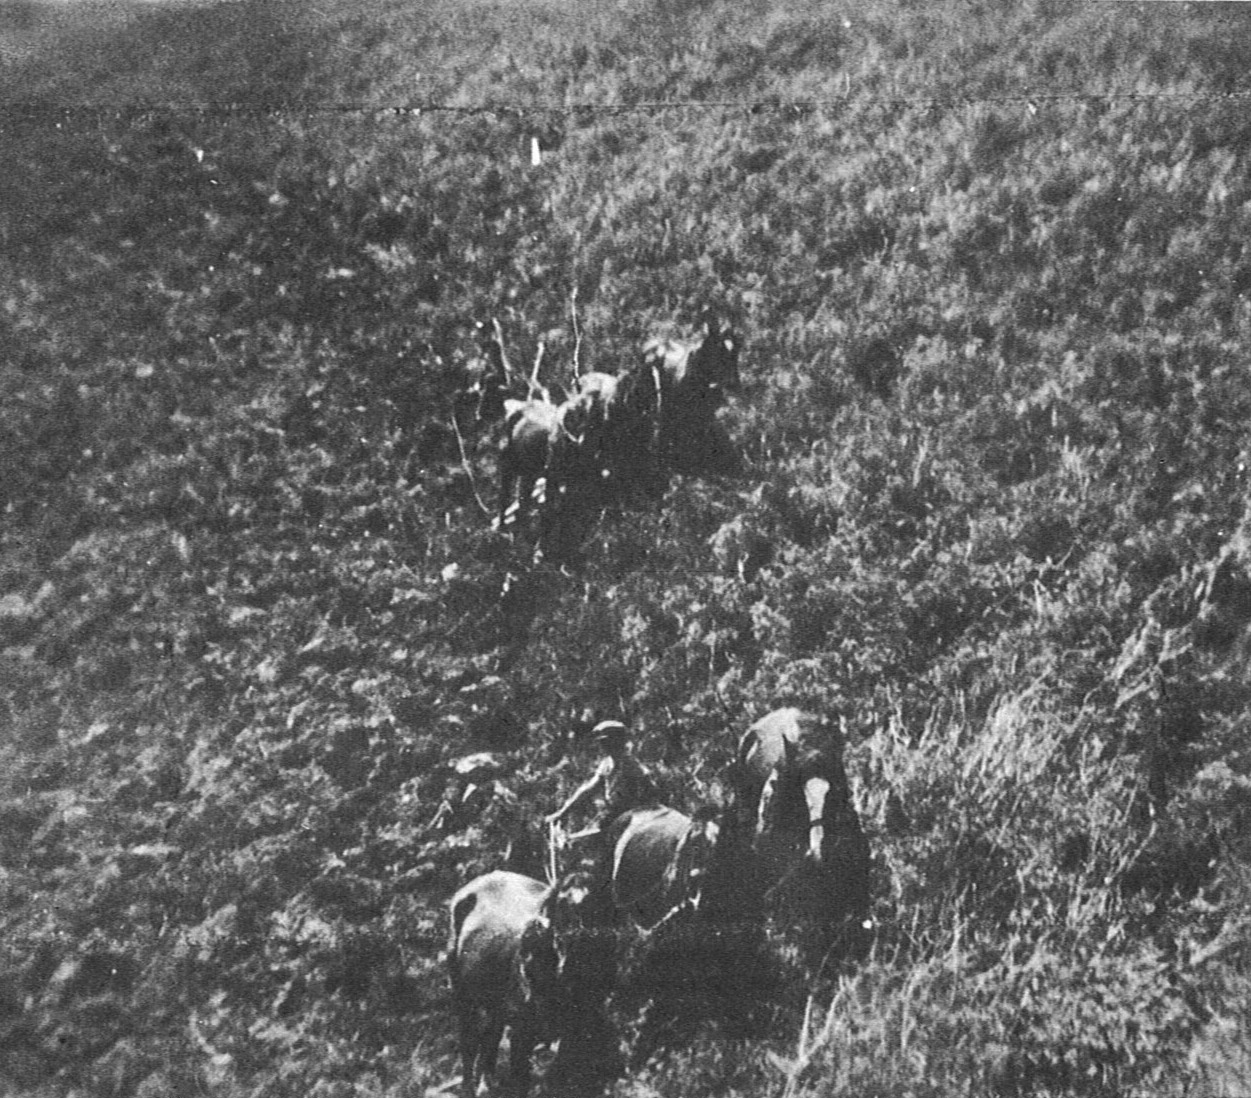 Ploughing Chitty's Hill, 1920's.